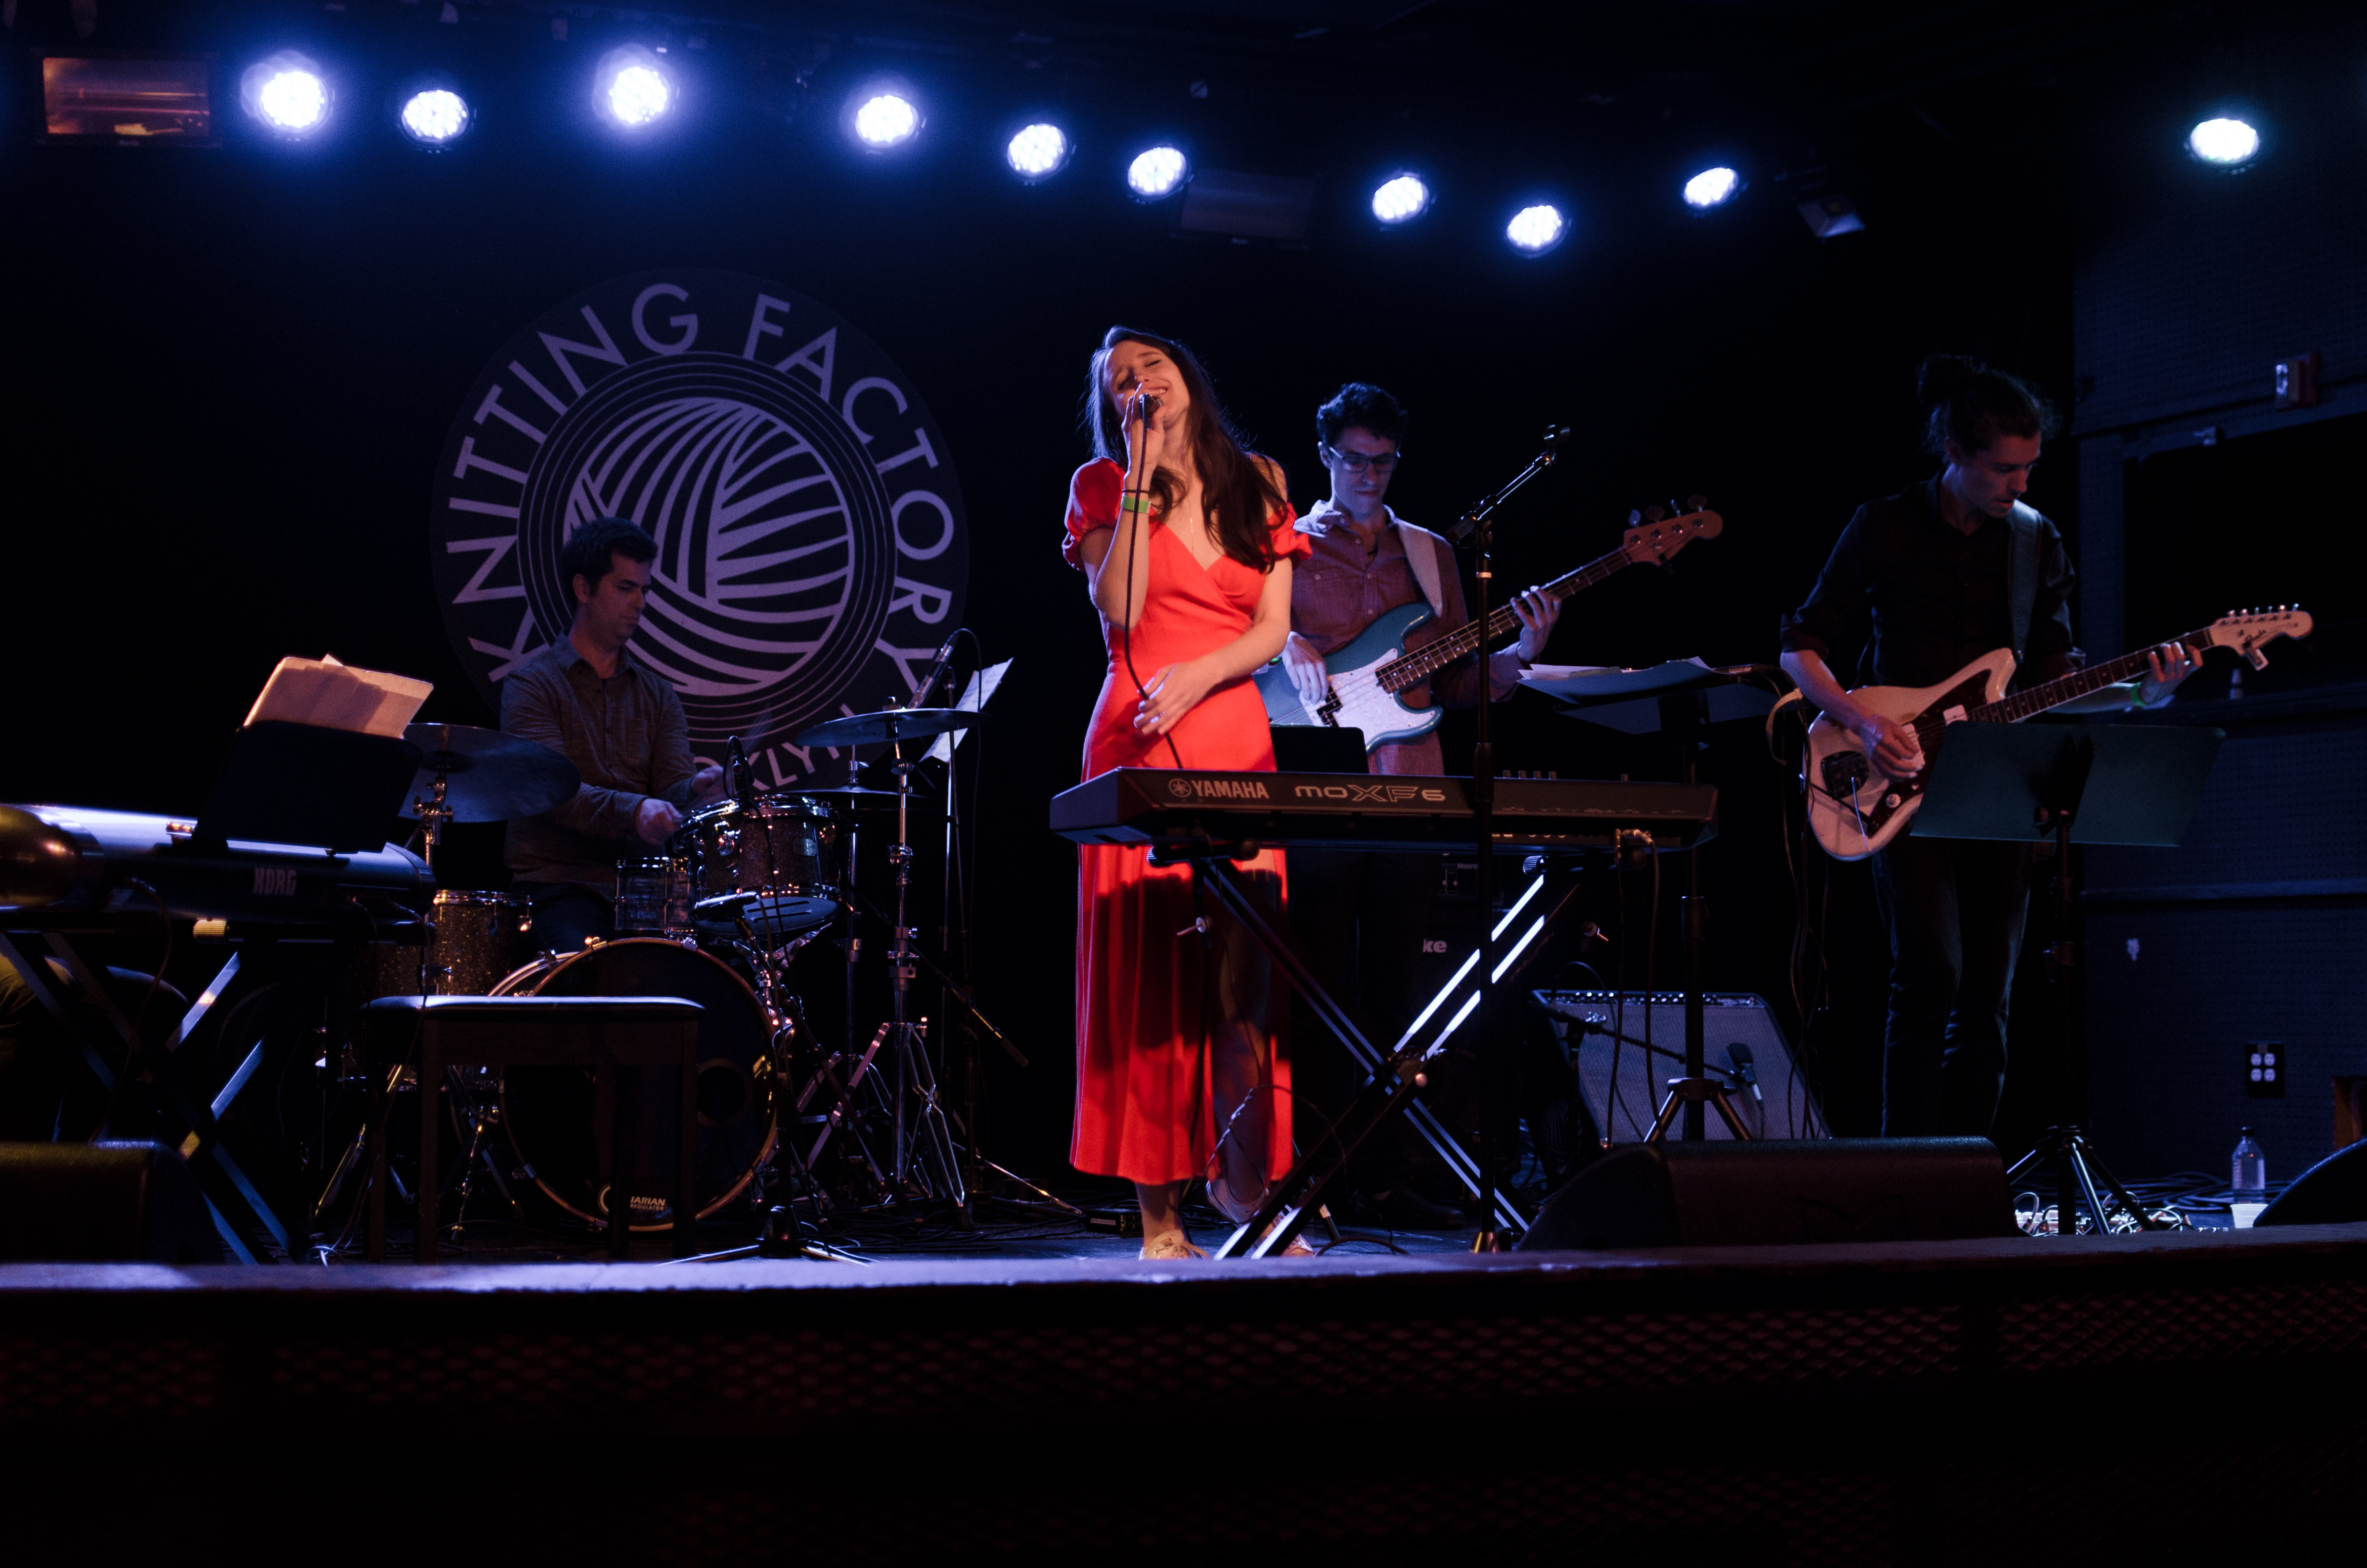 The Knitting Factory, Brooklyn